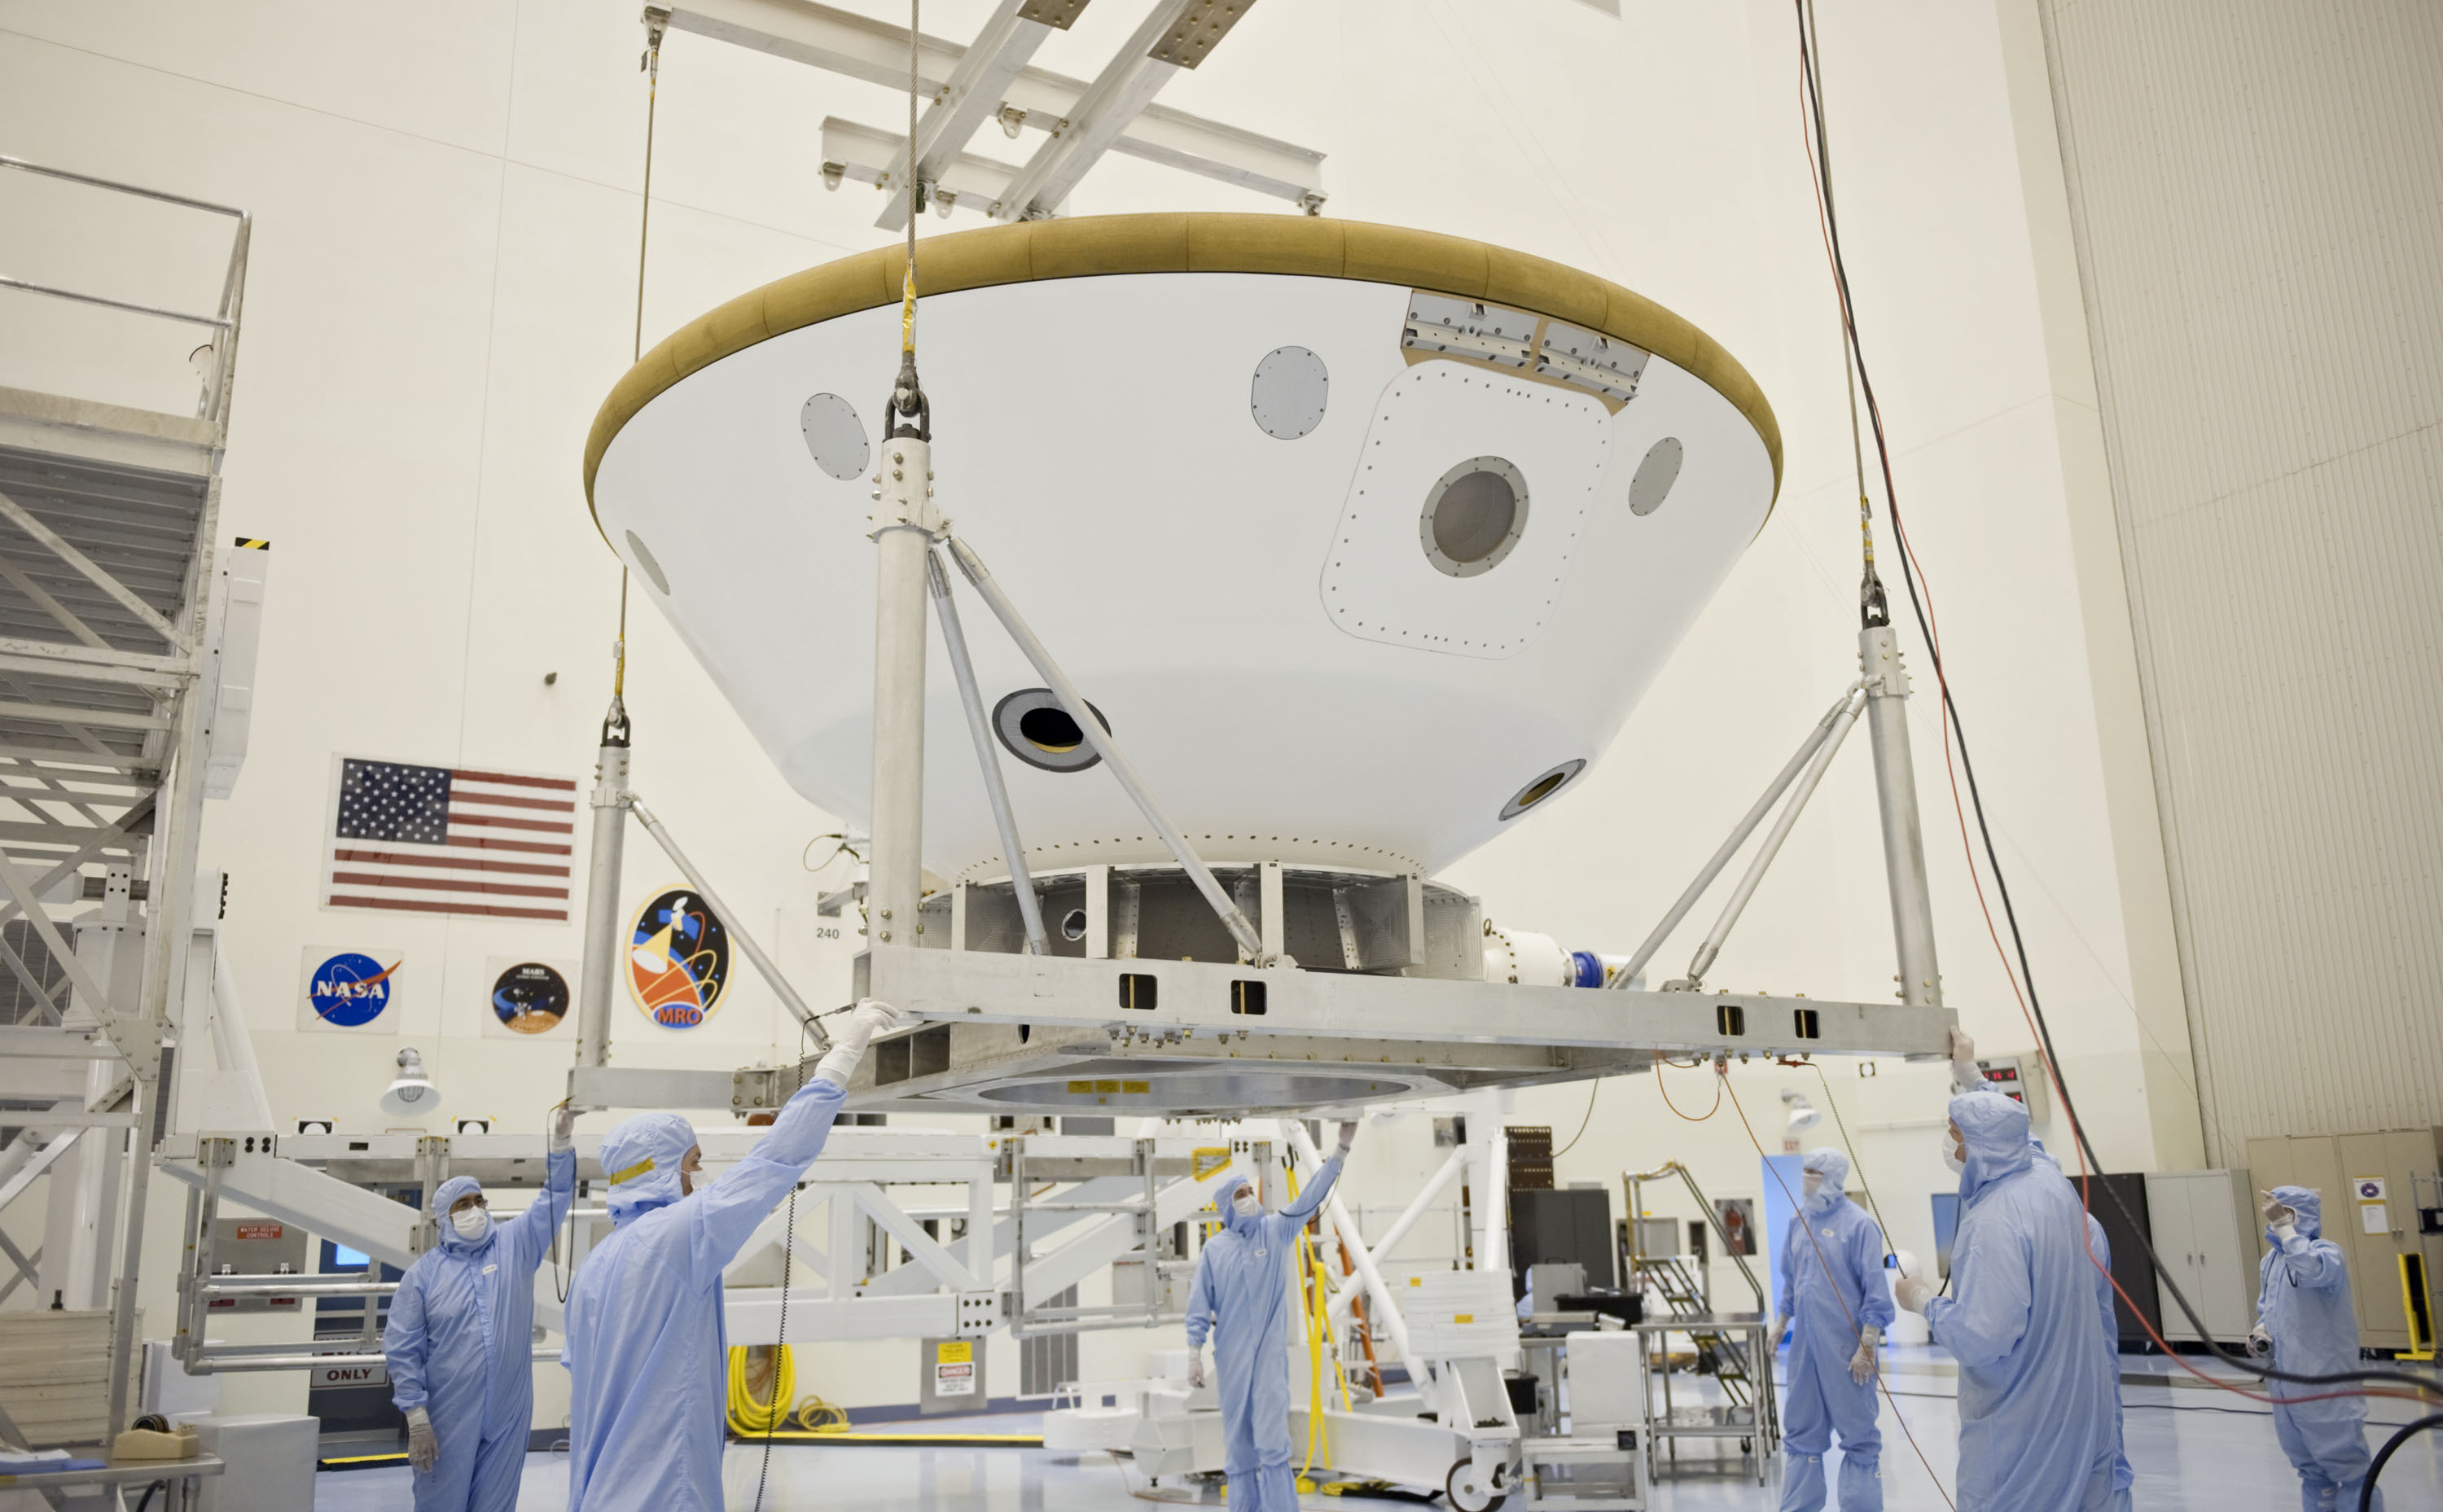 At the Payload Hazardous Servicing Facility at NASA's Kennedy Space Center in Florida, technicians using an overhead crane, move the aeroshell, a component of NASA's Mars Science Laboratory (MSL), back to a work stand after a spin and balance test.